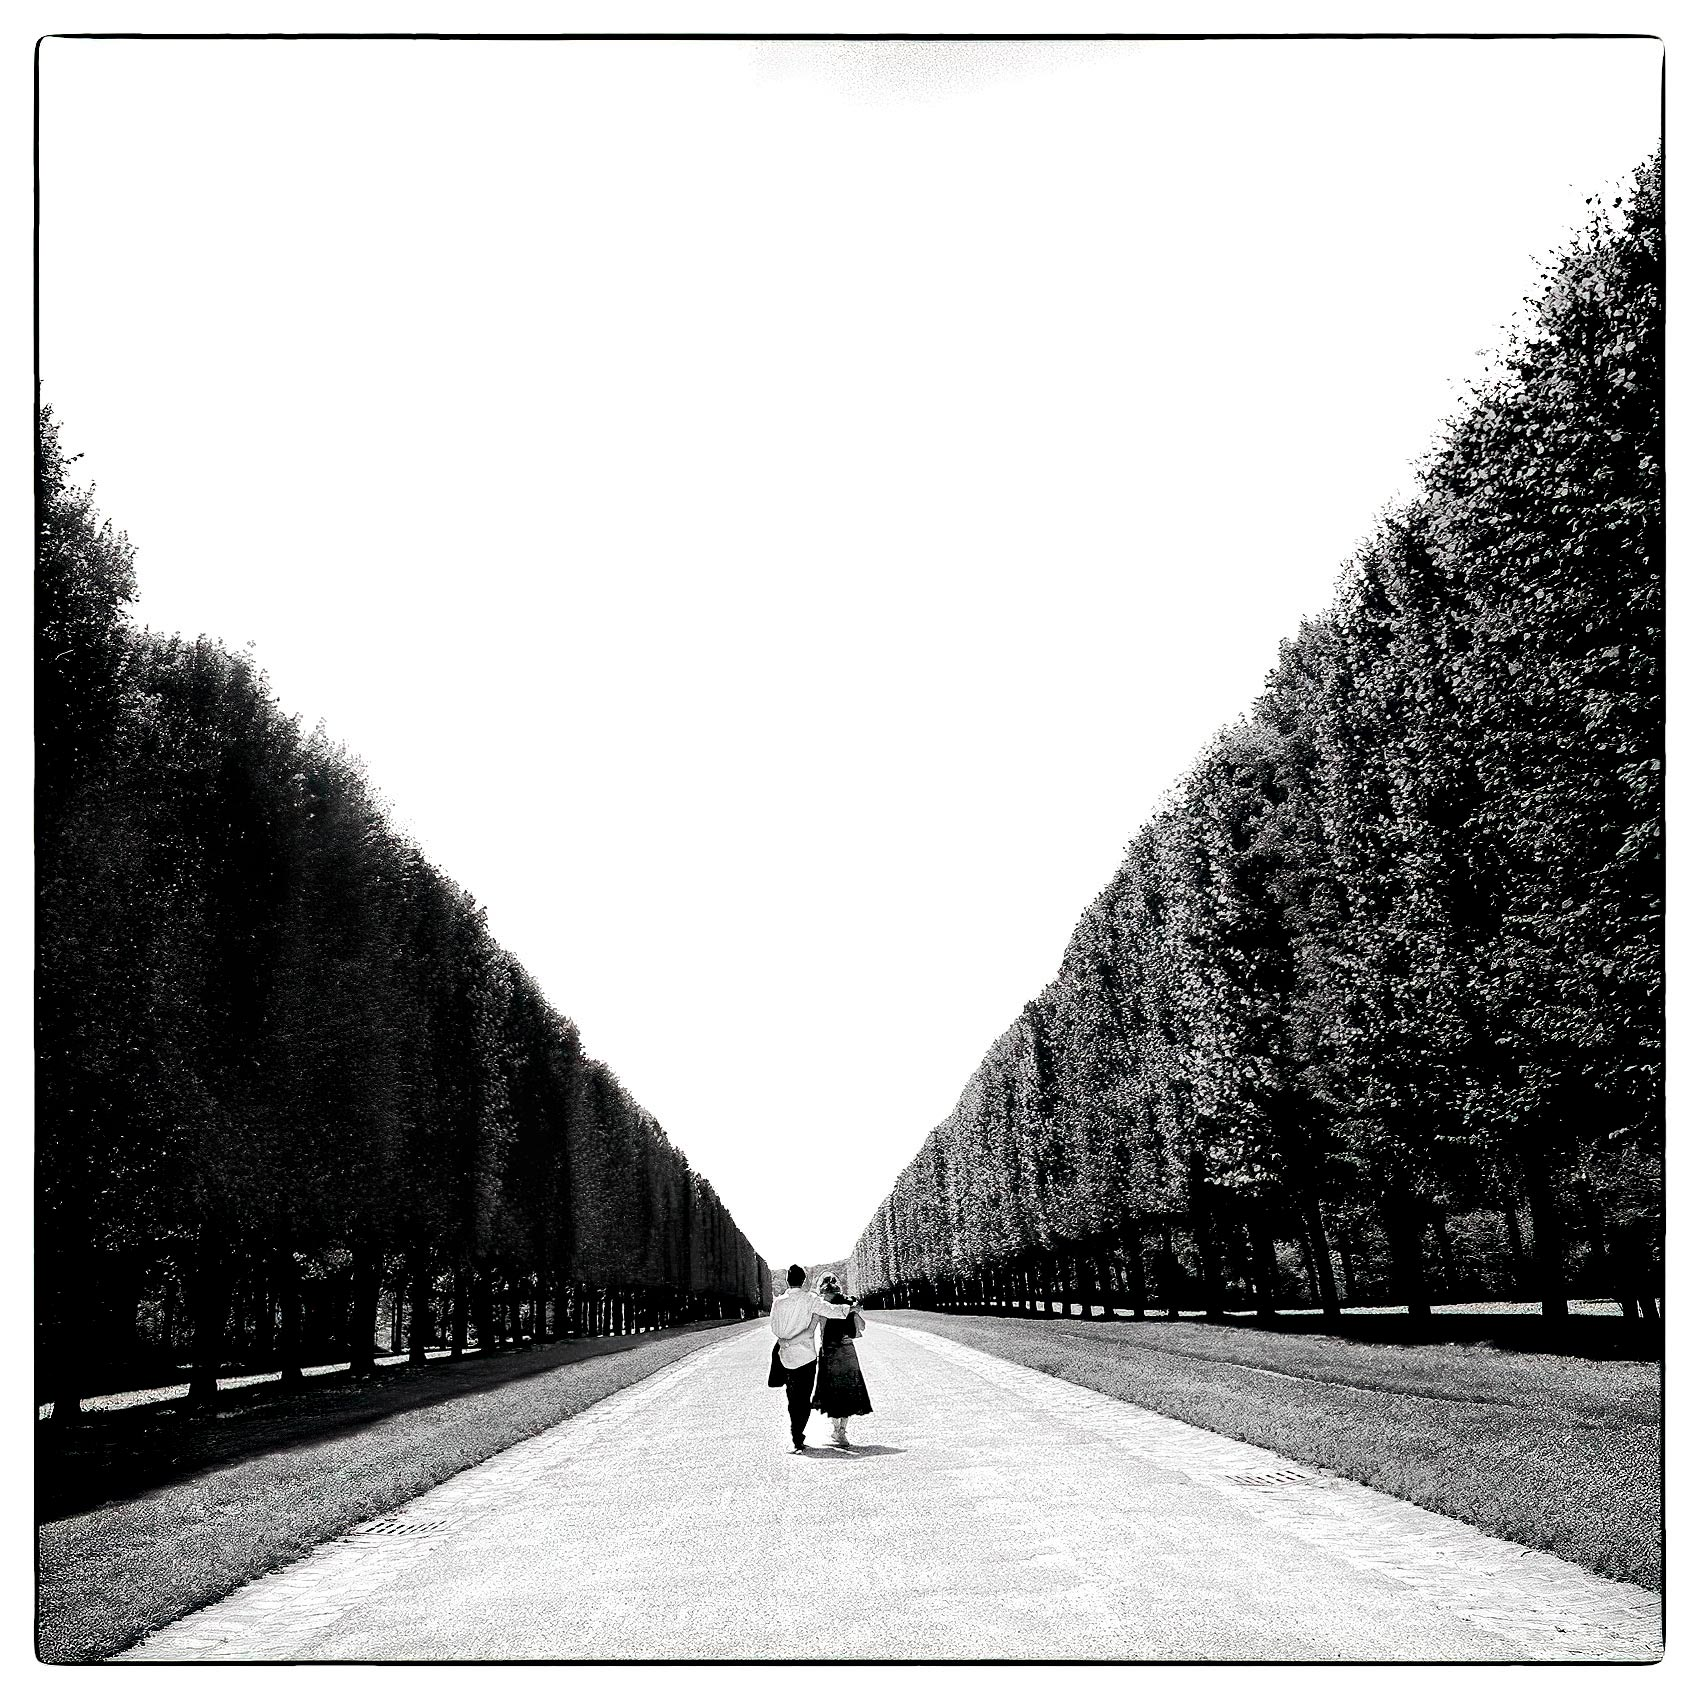 a-couple-are-framed-by-trees-as-they-walk-down-the-road-leading-to-the-exit-of-chateau-de-versailles